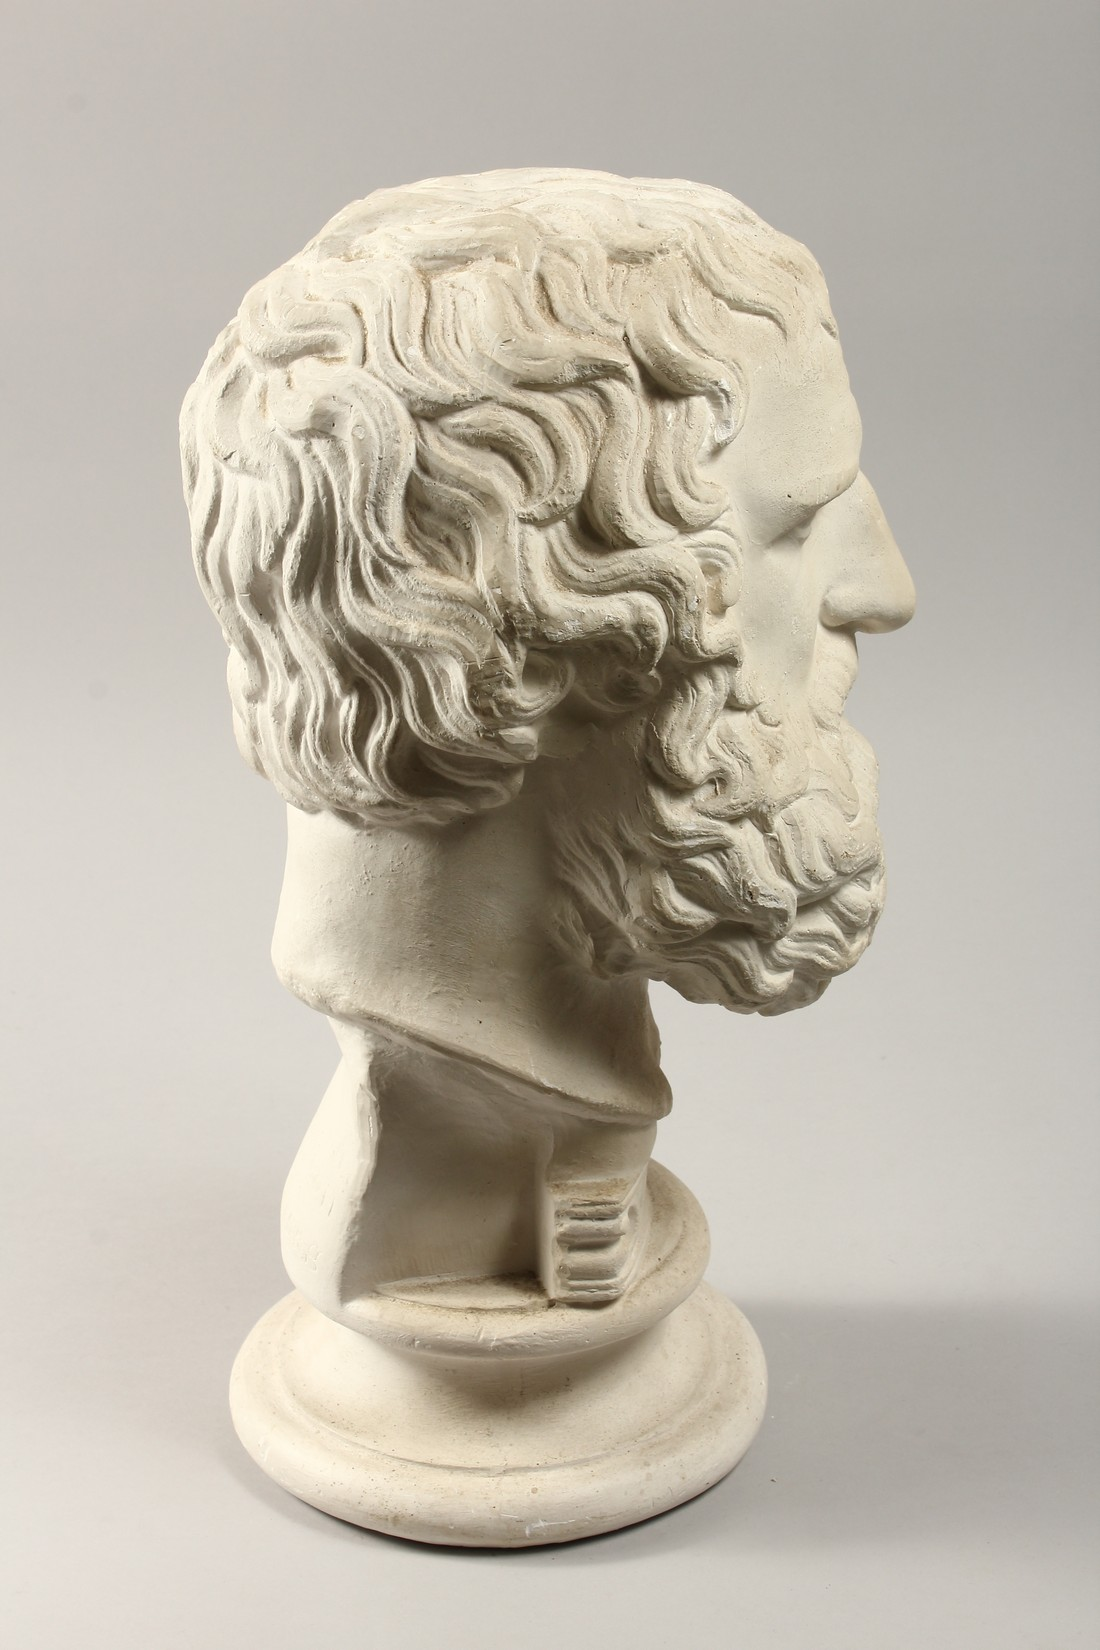 AN ANTIQUE PLASTER BUST 19ins high. - Image 5 of 5